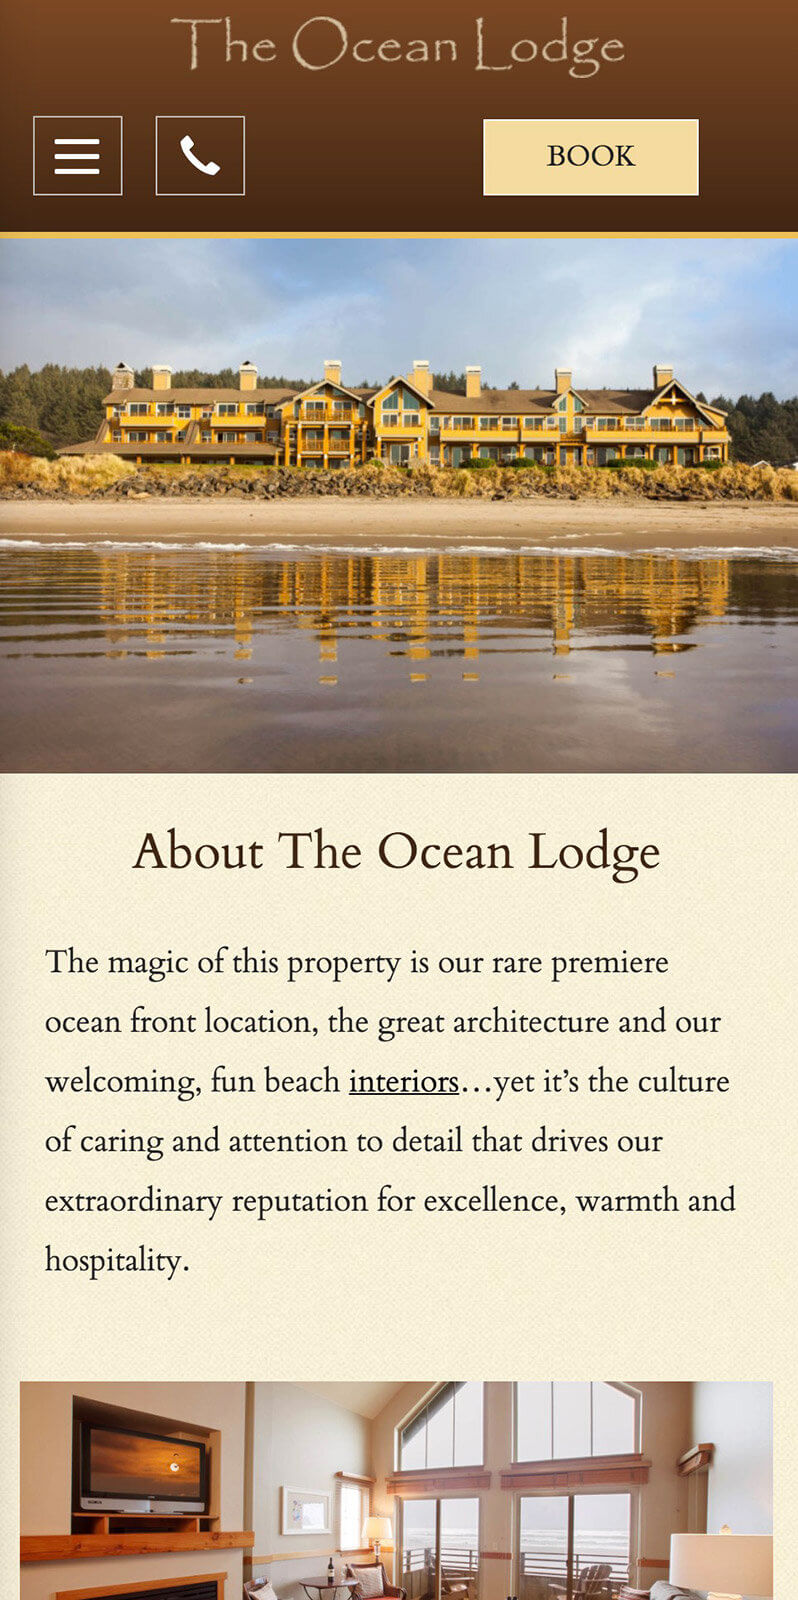 The Ocean Lodge mobile site